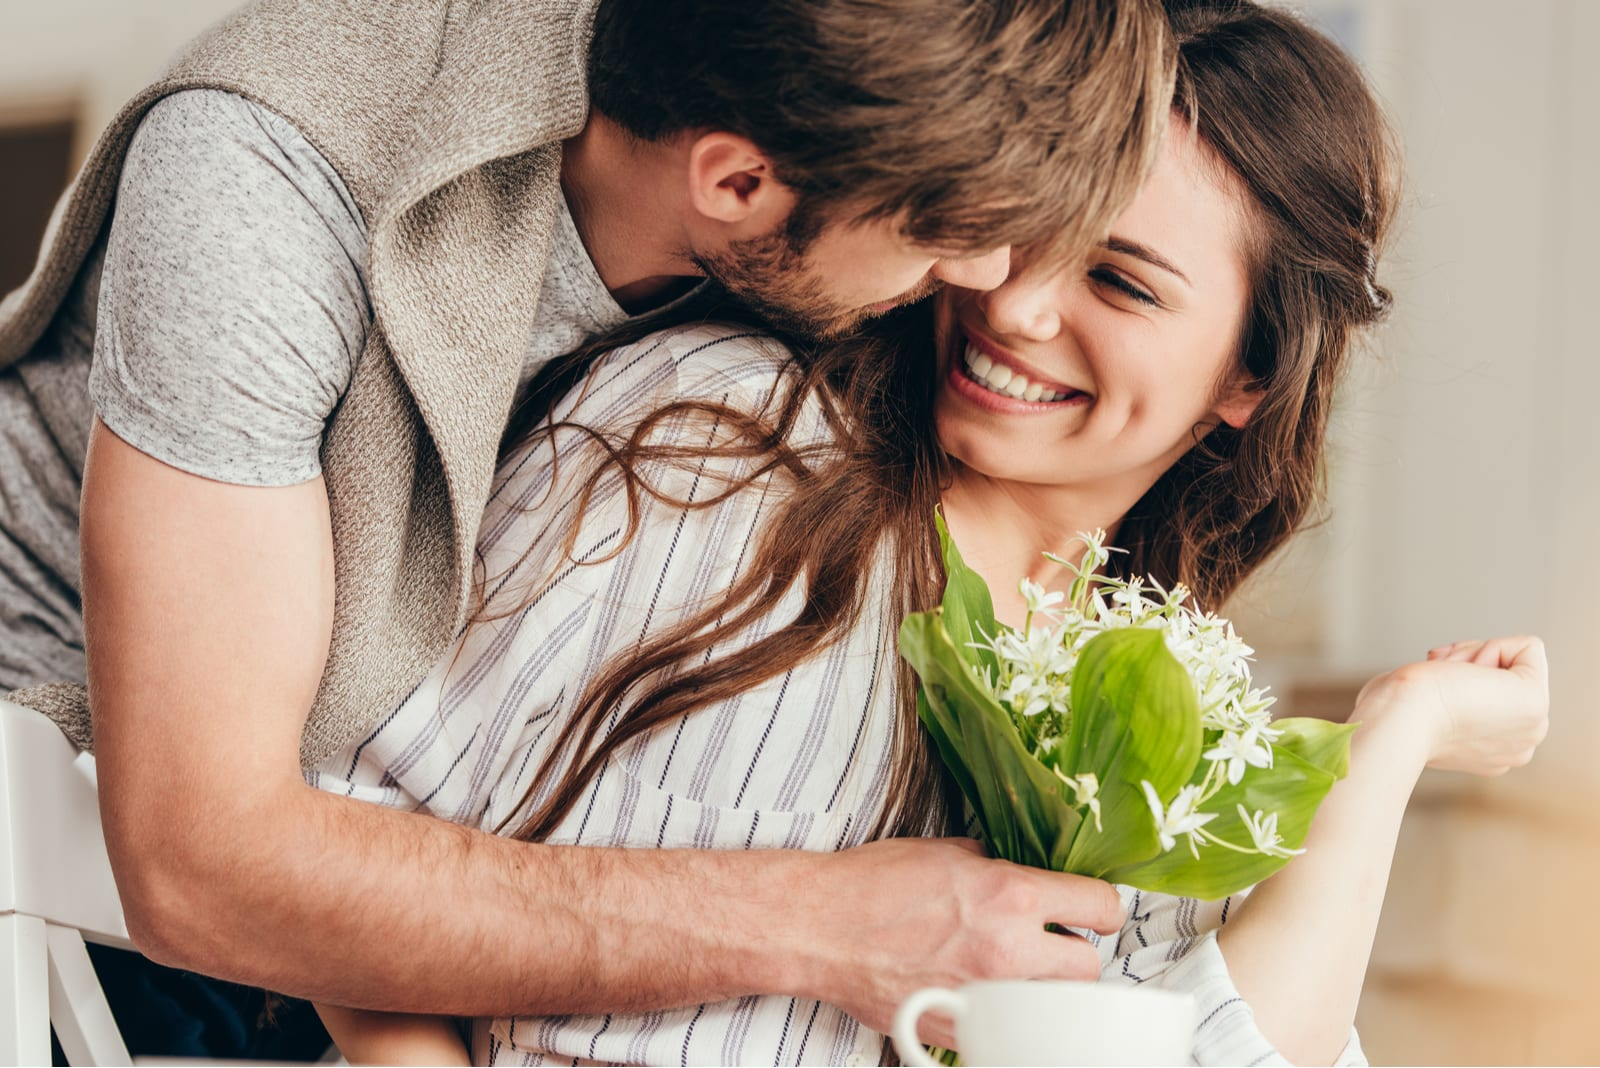 a man hugged a woman and bought her a bouquet of flowers